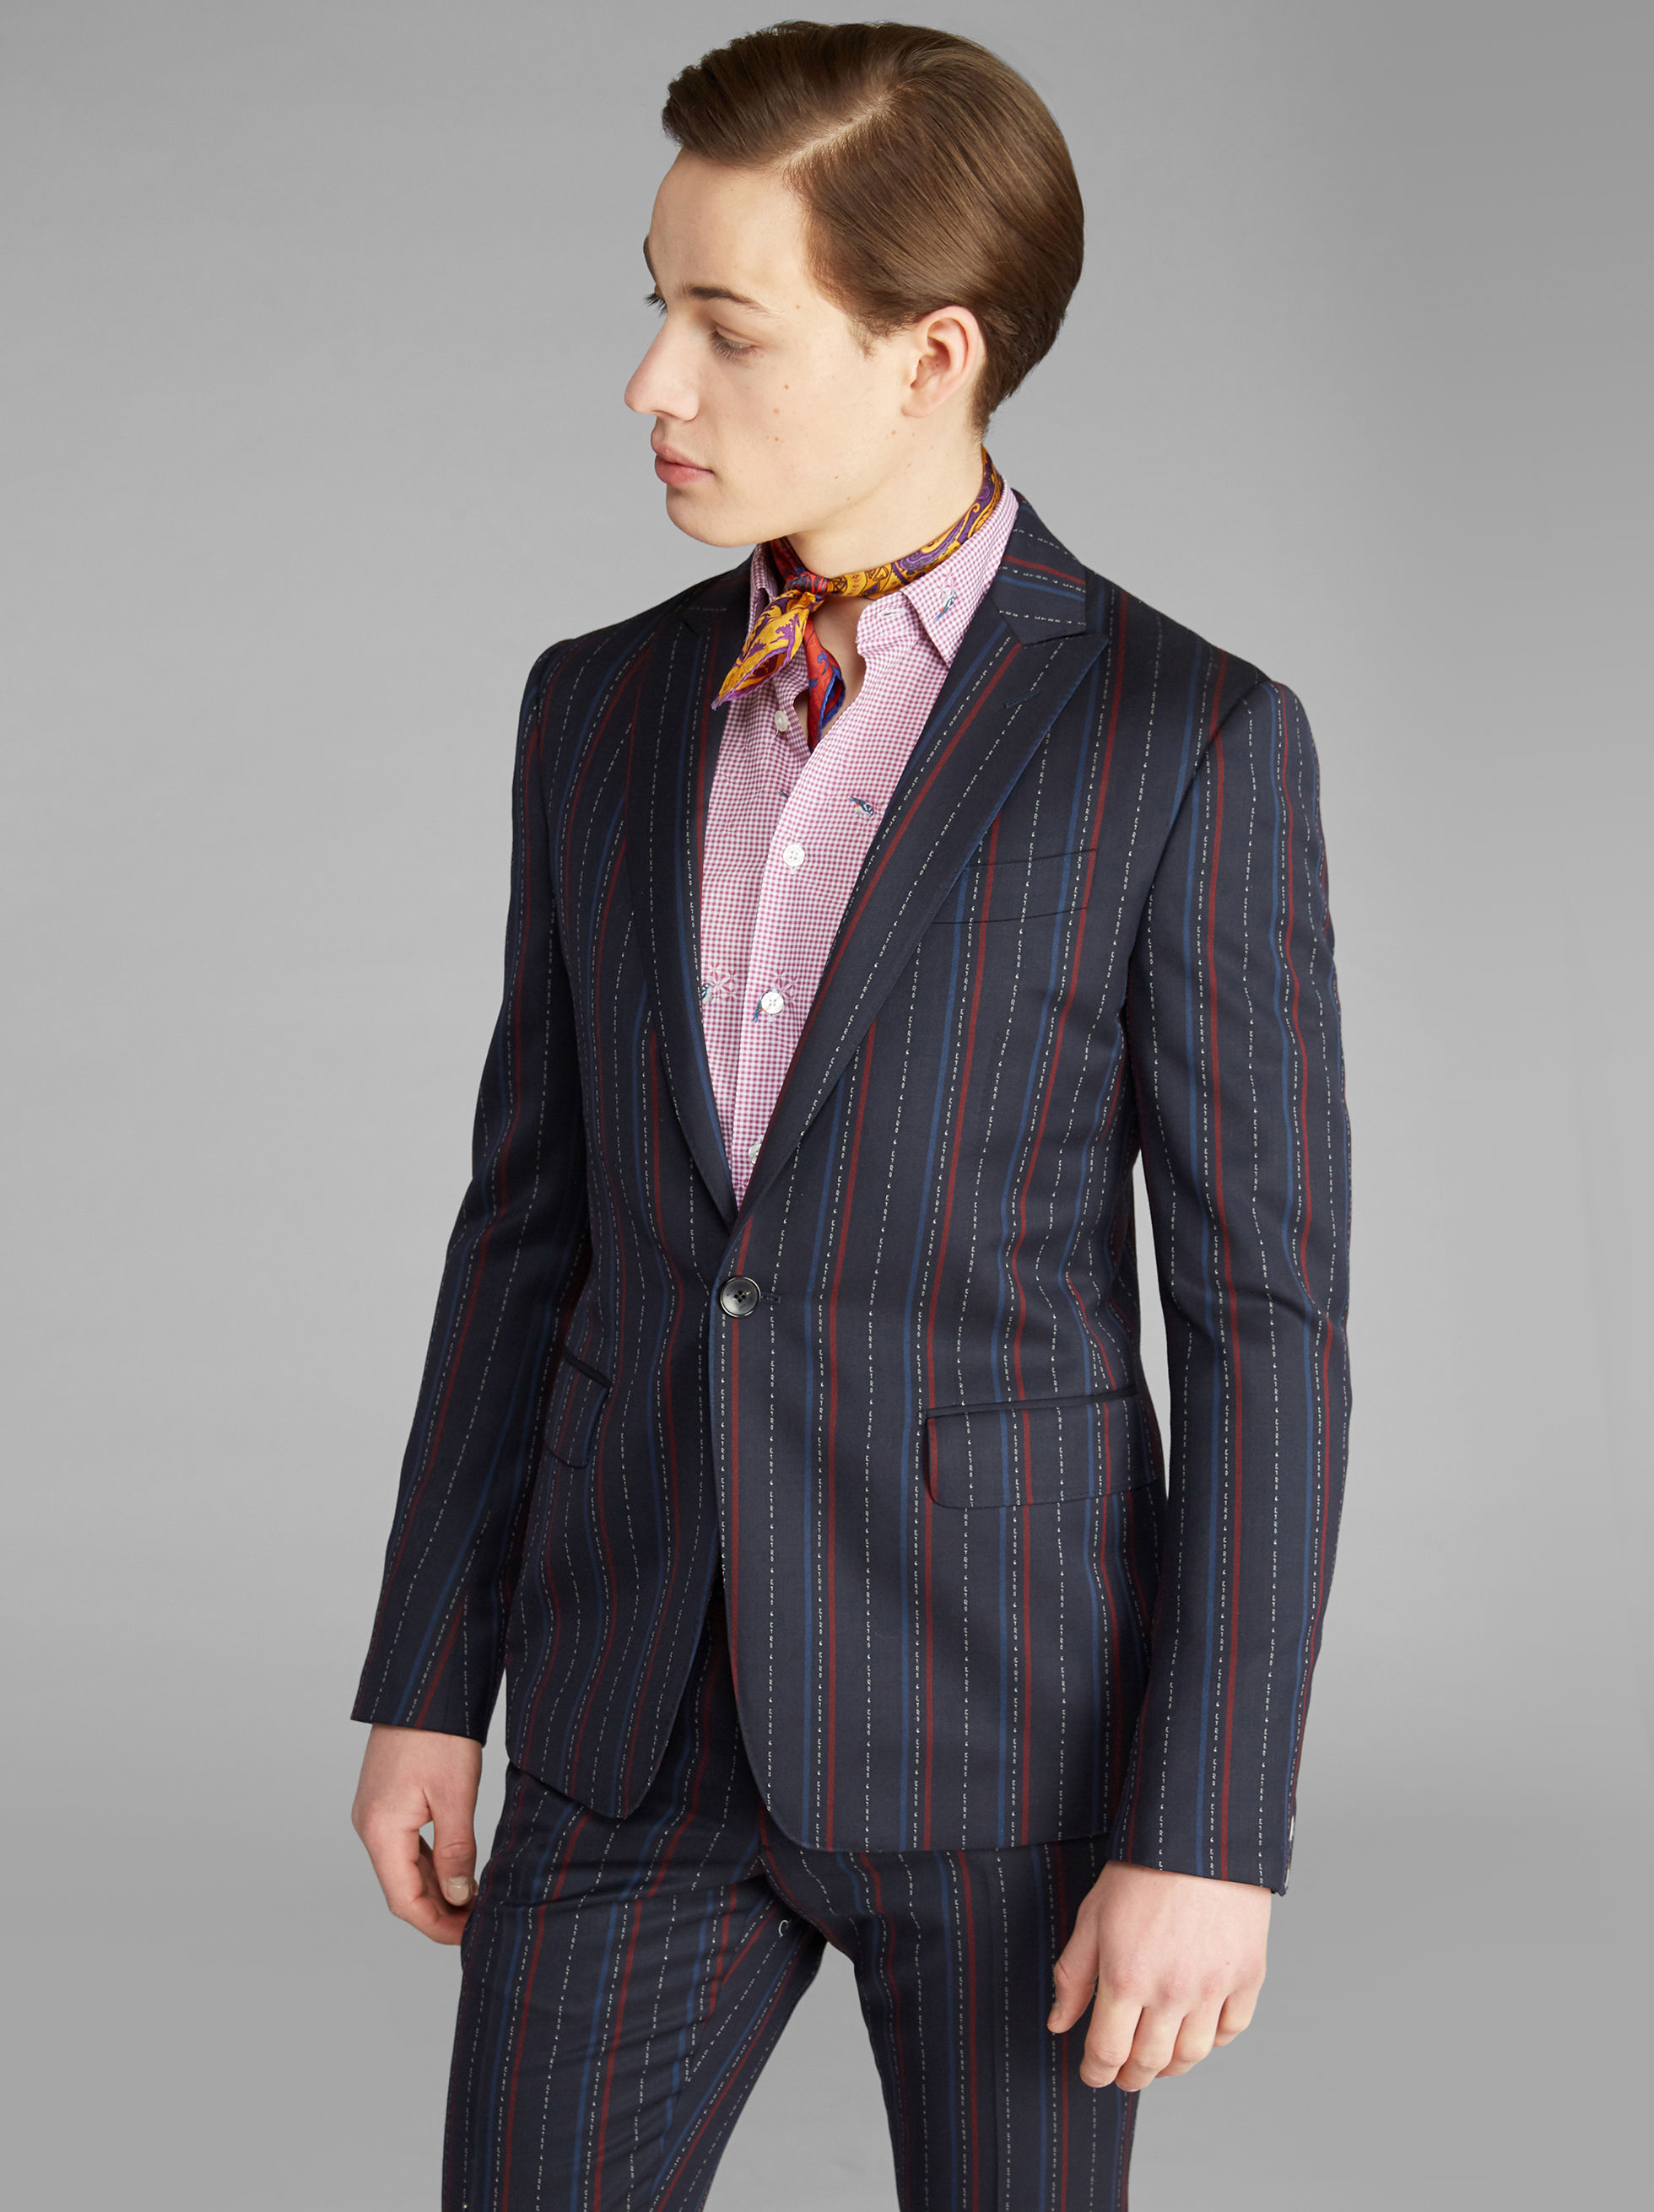 JACQUARD CANVASSED SUIT